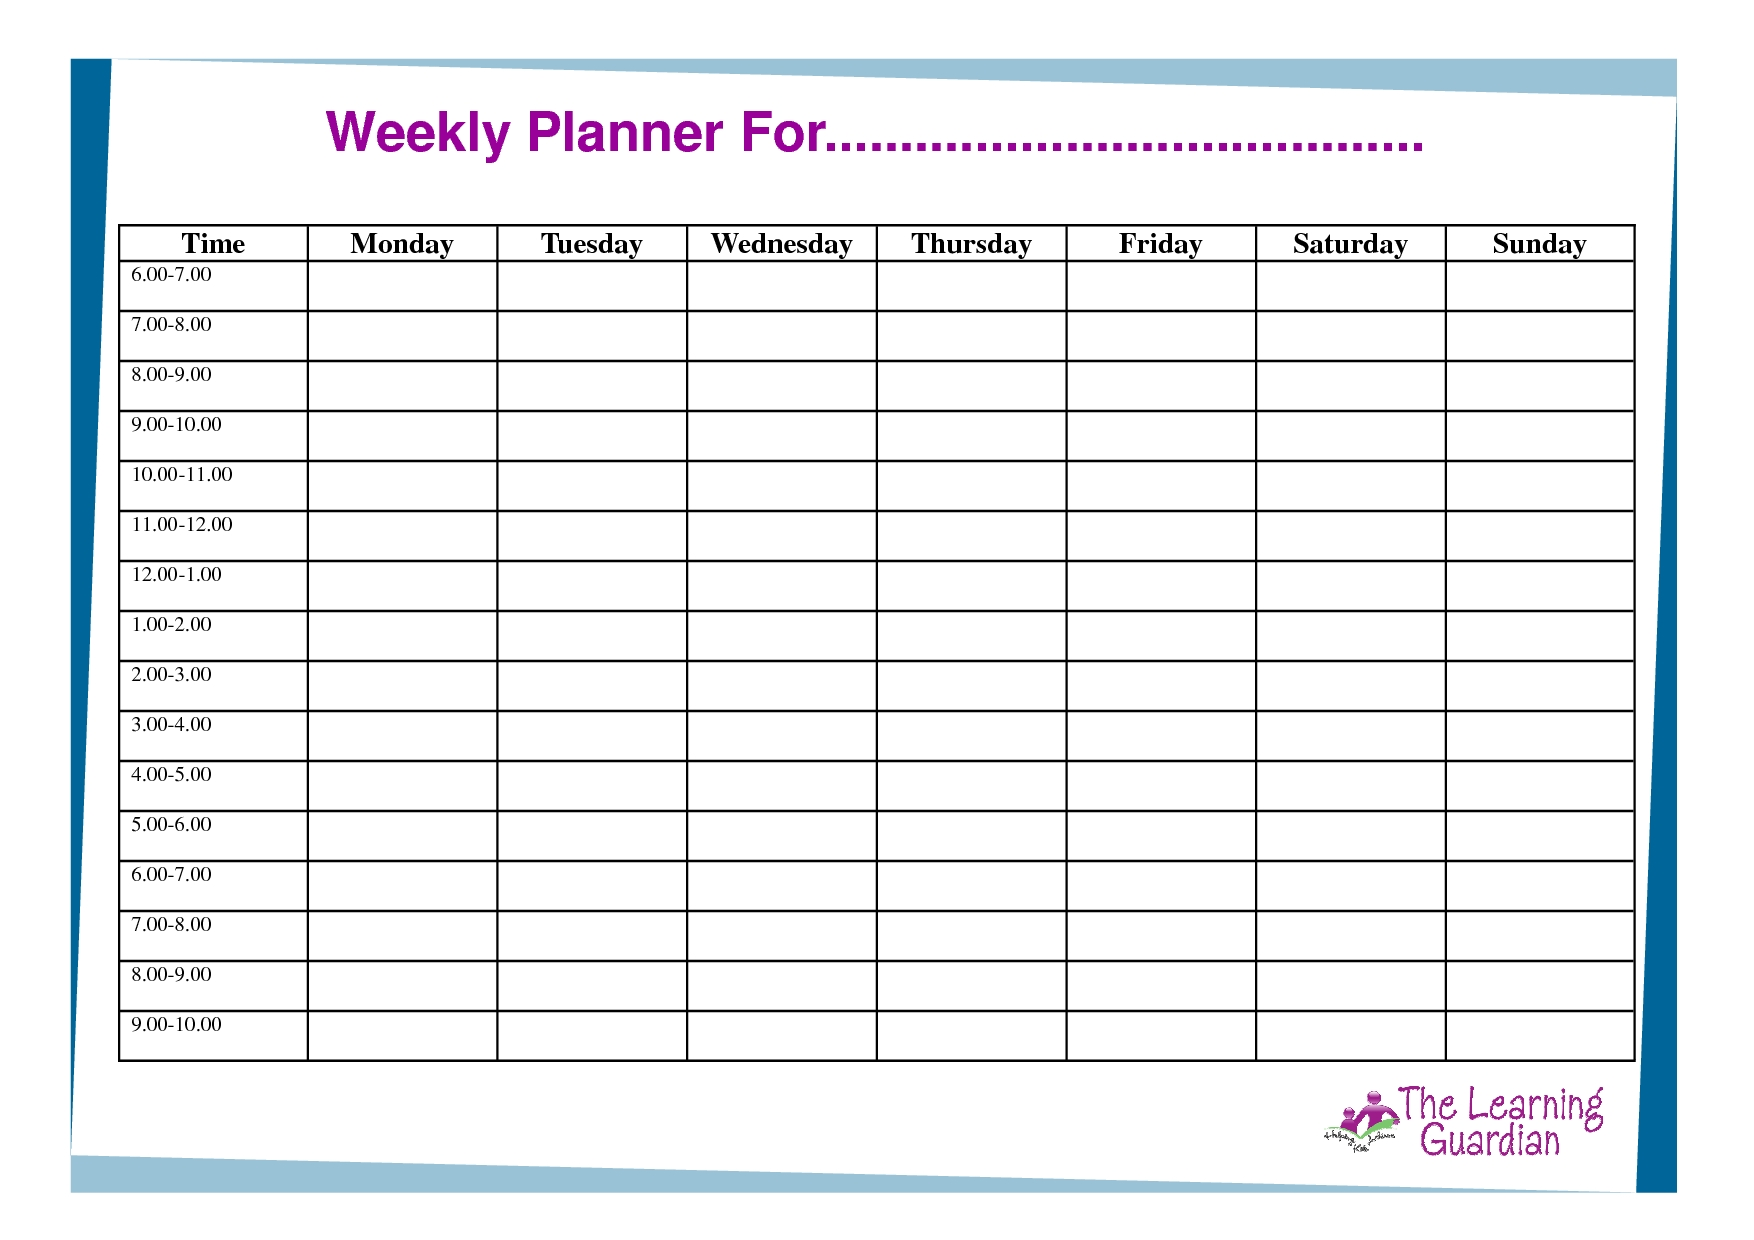 Free Printable Weekly Calendar Templates Planner For Time Hedule in Blank Weekly Schedule With Times